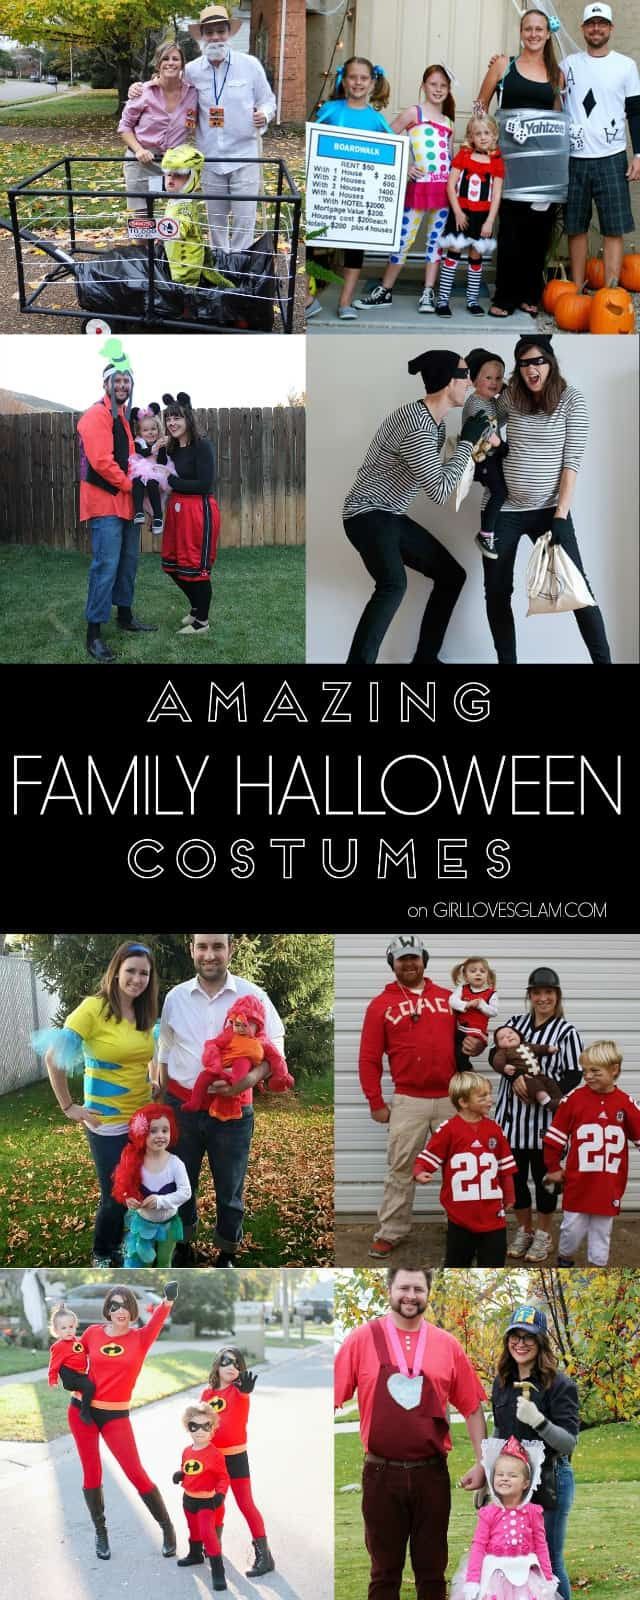 Amazing Family Halloween Costumes on www.girllovesglam.com